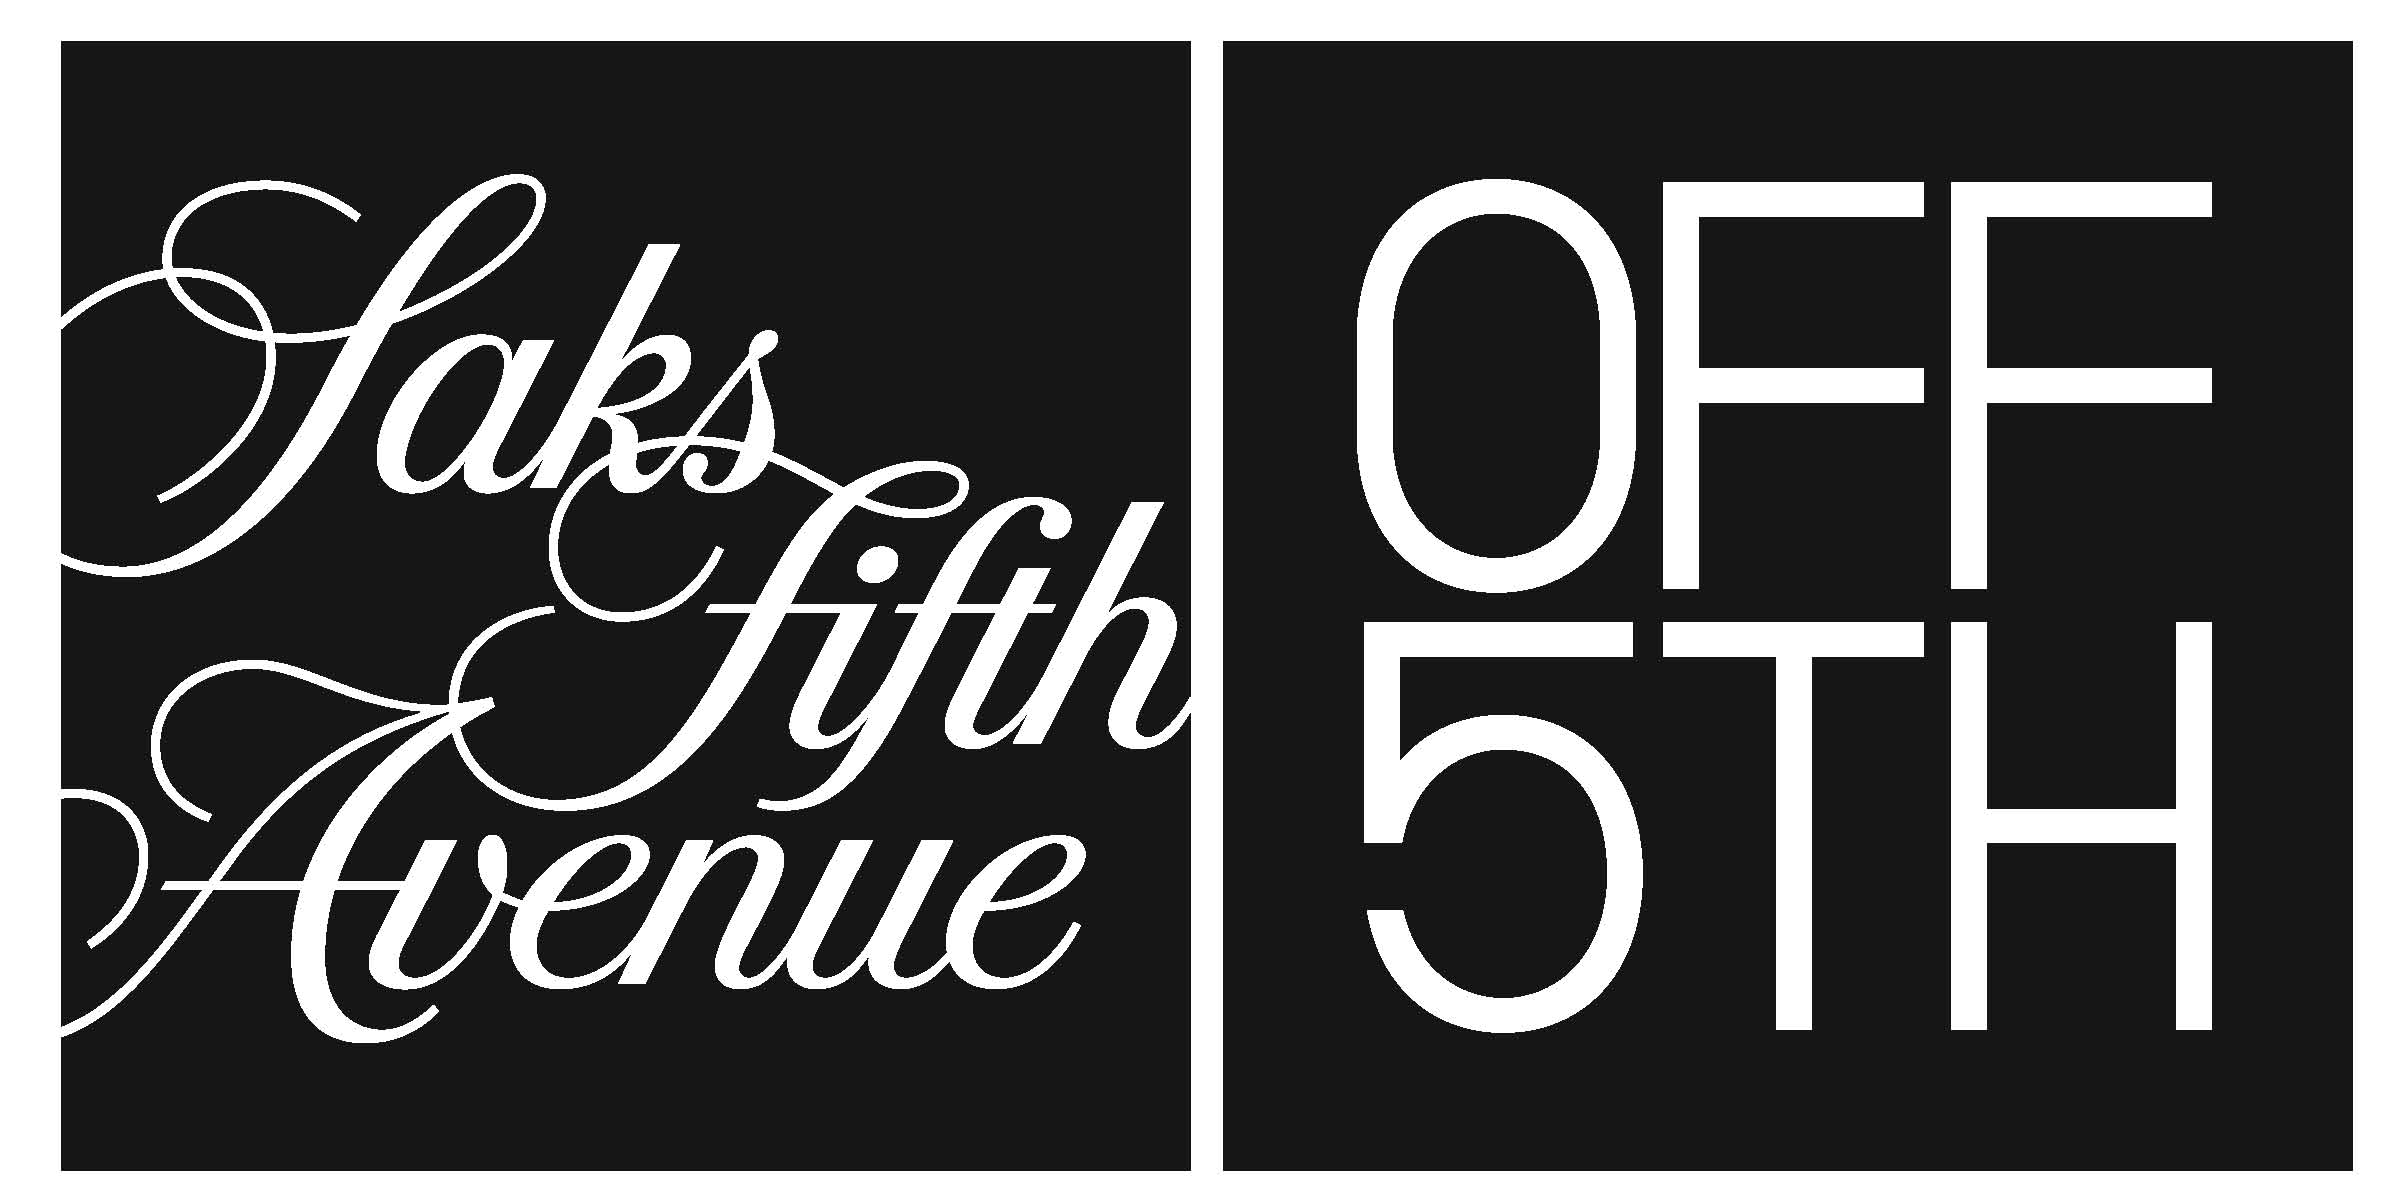 Find your nearest Saks OFF 5TH store. THERE'S EVEN MORE IN STORES! Head to your local store now to check out the latest arrivals and even more brands.